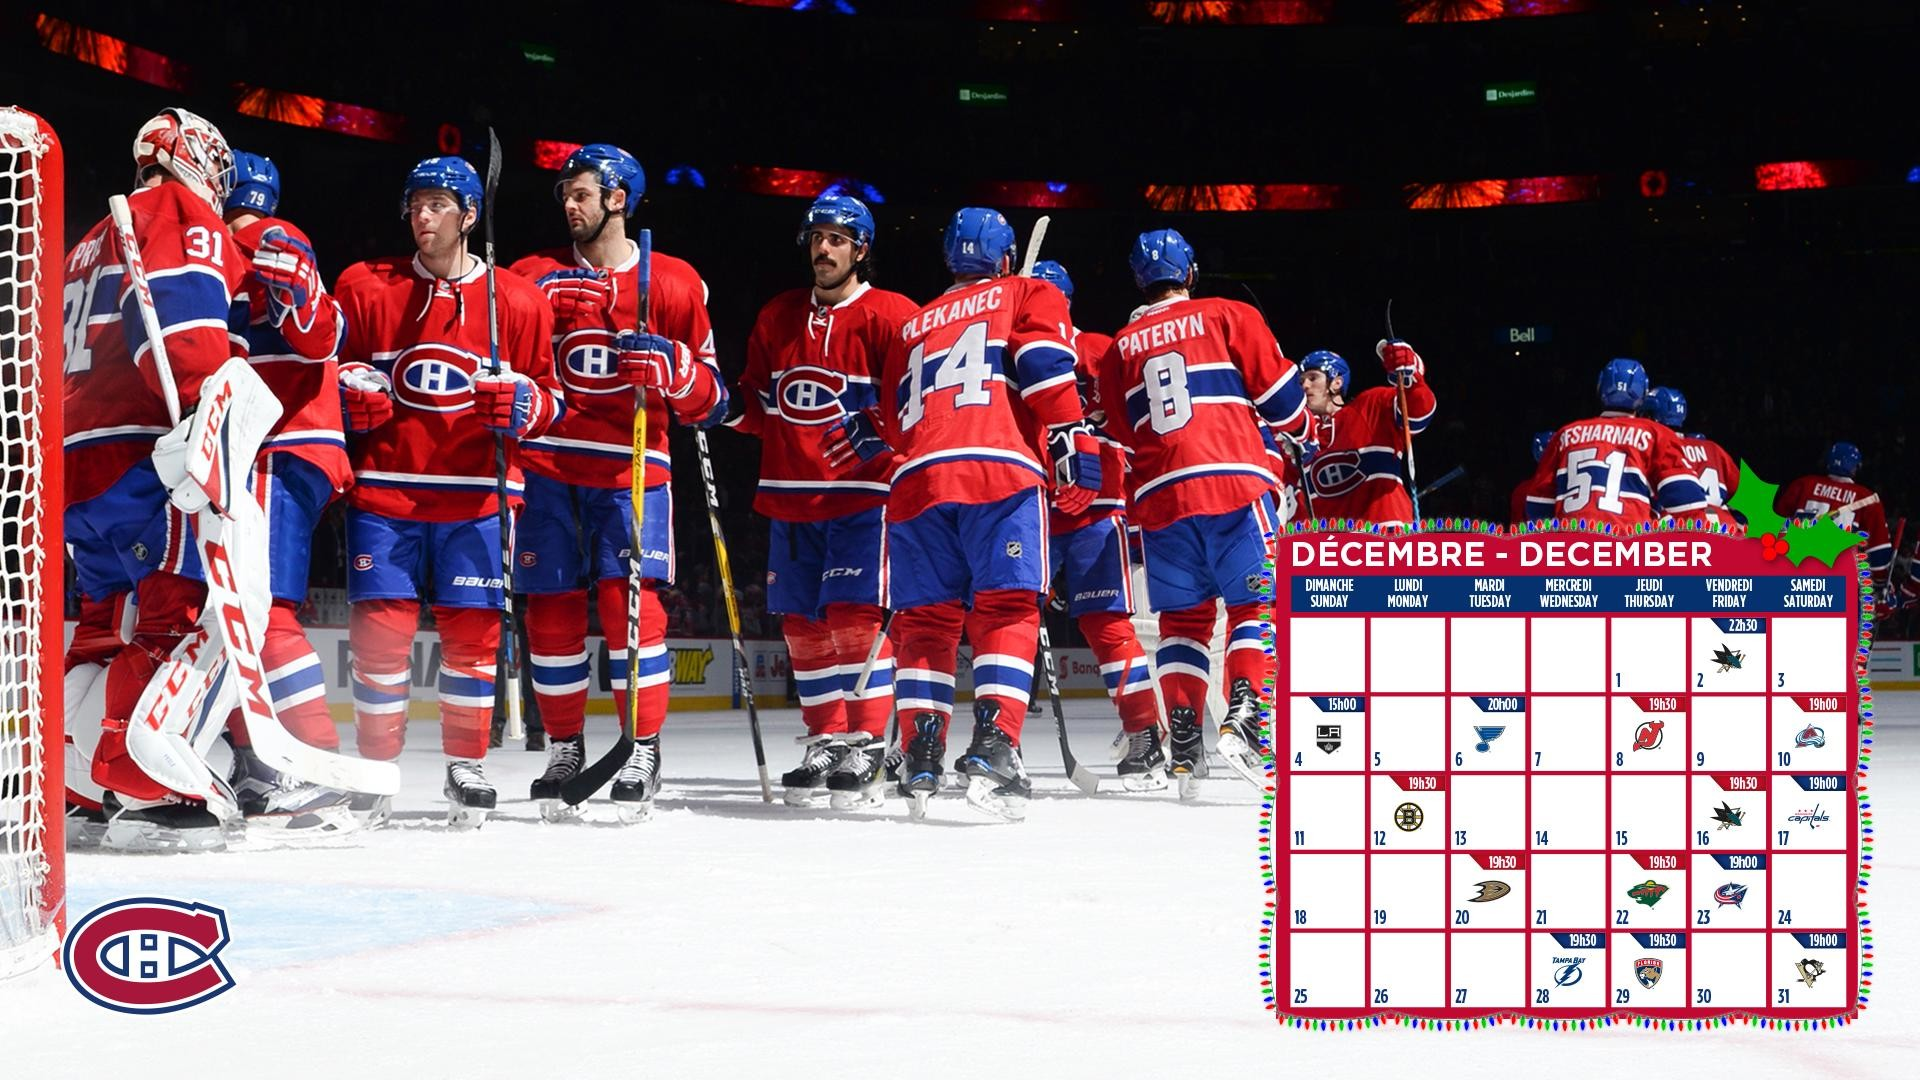 Res: 1920x1080, The official Montreal Canadiens desktop wallpaper for December.